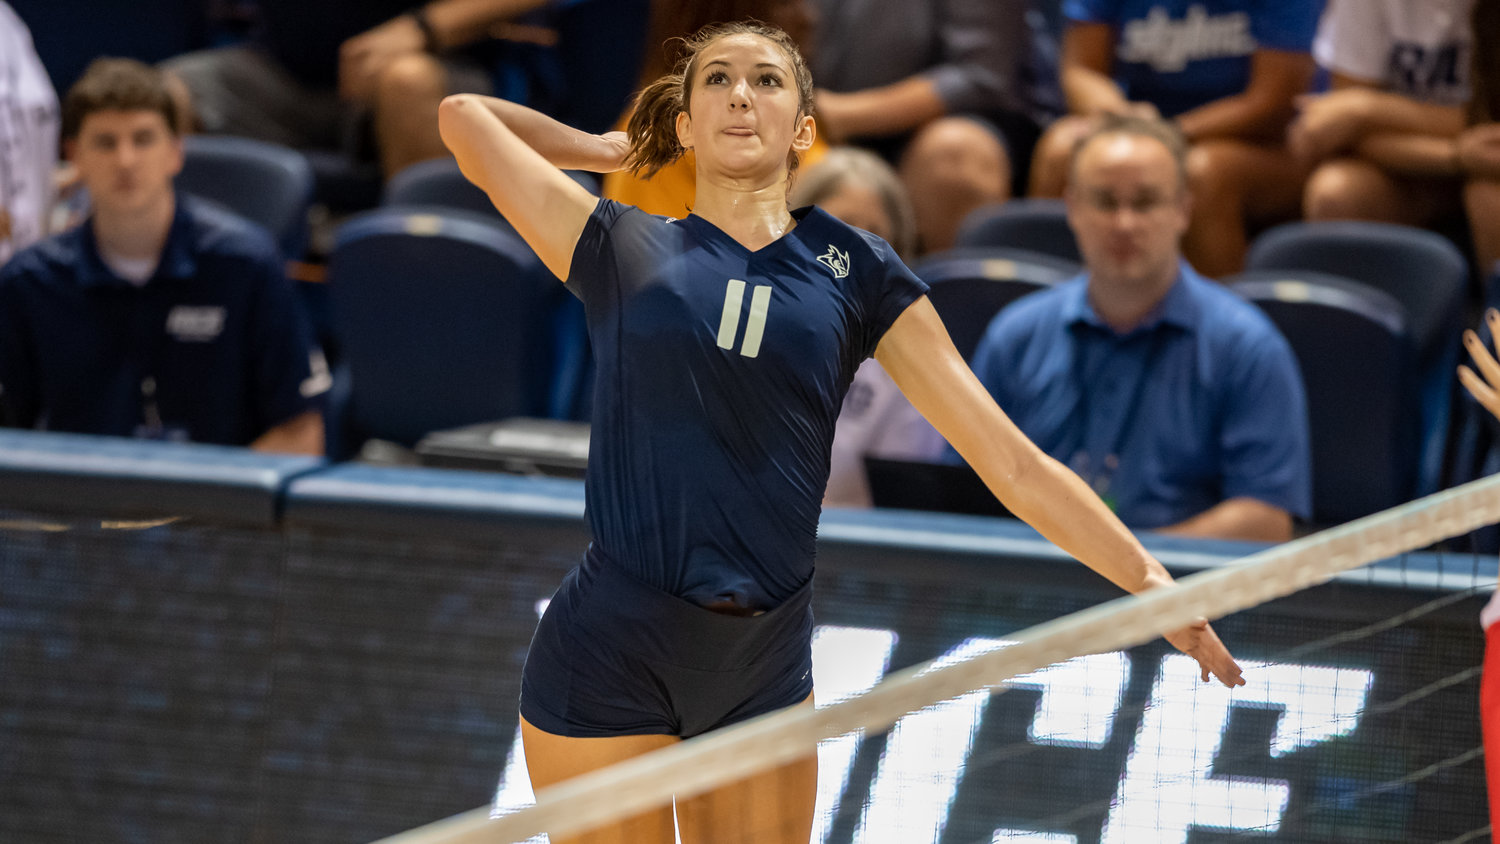 Rice junior outside hitter and former Cinco Ranch star Nicole Lennon is one of four nominees for the 2020 Houston Sports Awards' College Athlete of the Year.